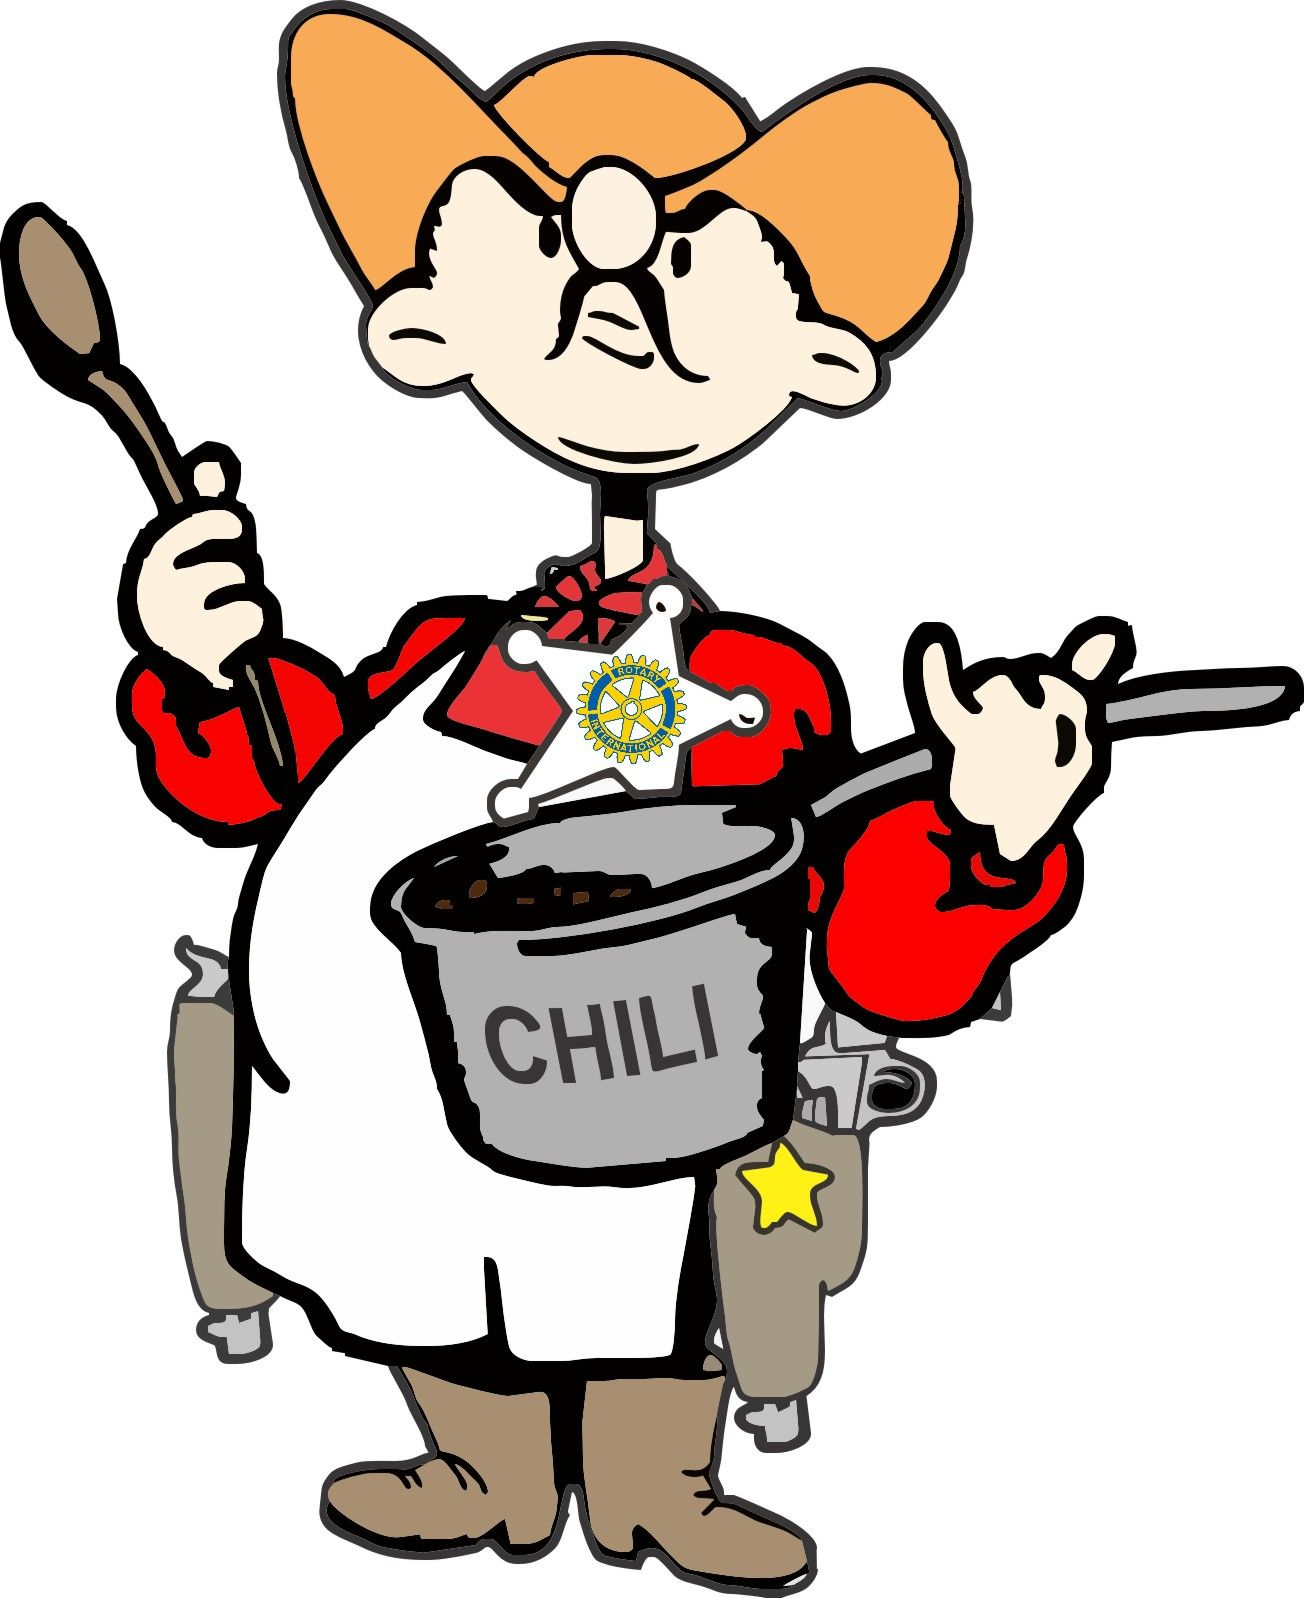 chili cook off clipart free free download best chili hot dog logos free hot dog logos free